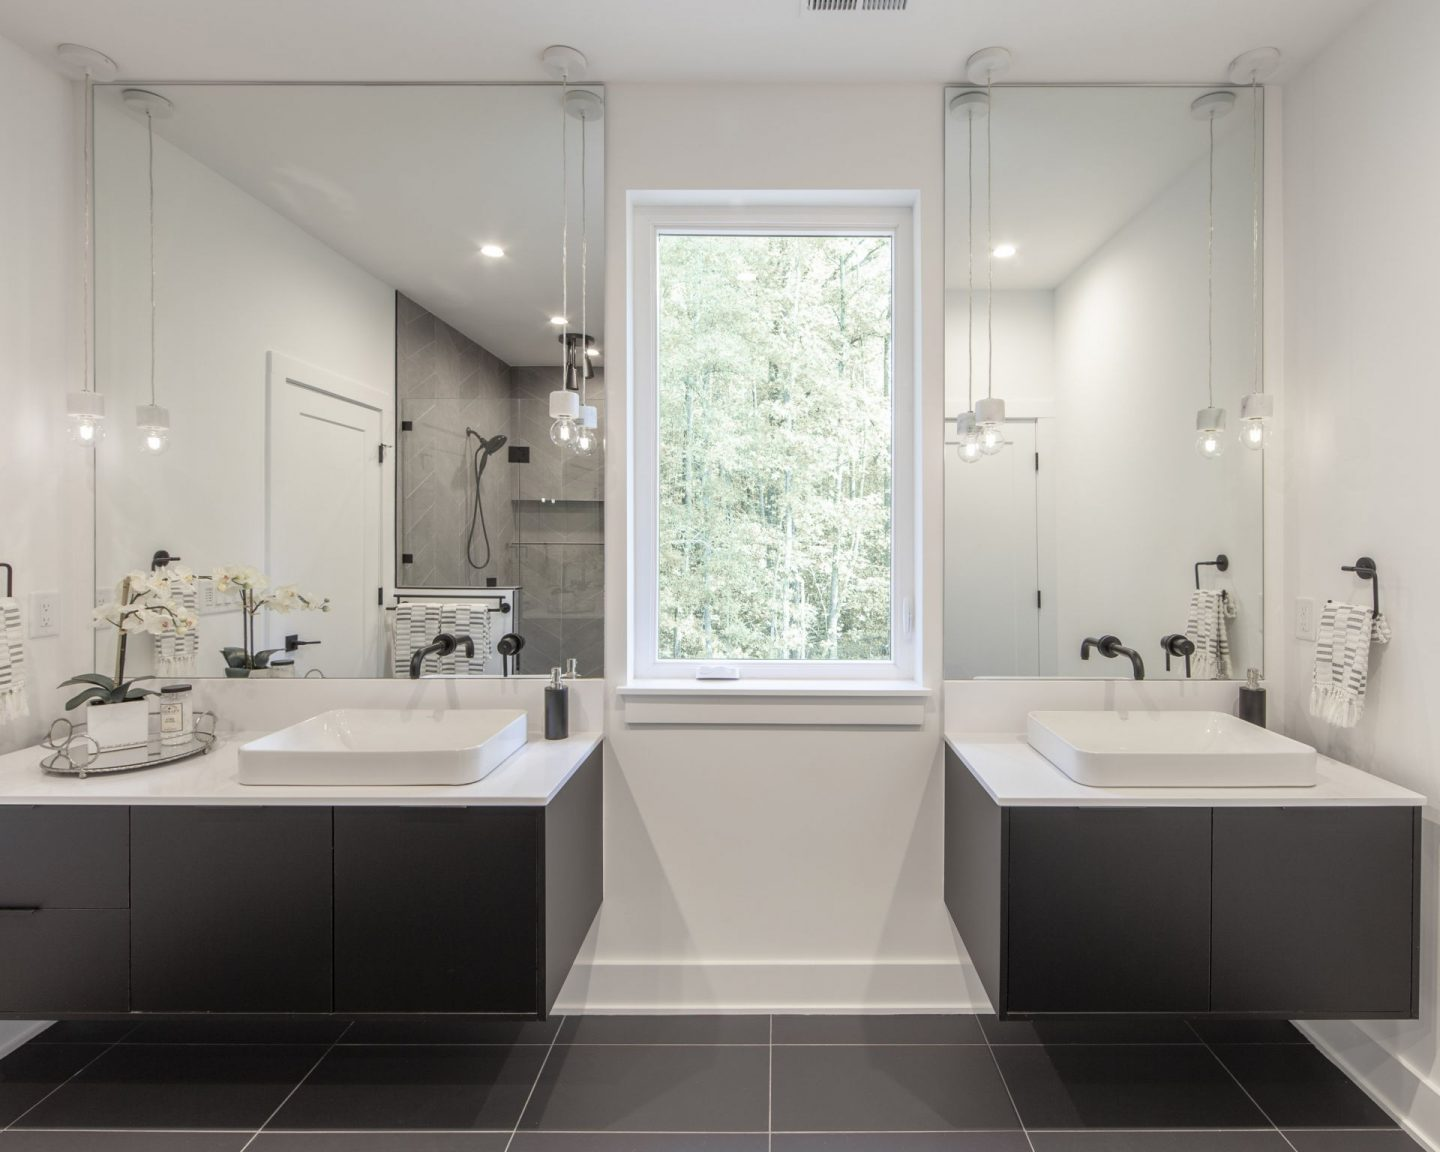 Modern Luxury Bathroom - Charlotte, NC - New Construction - Schwaiger Realty Group